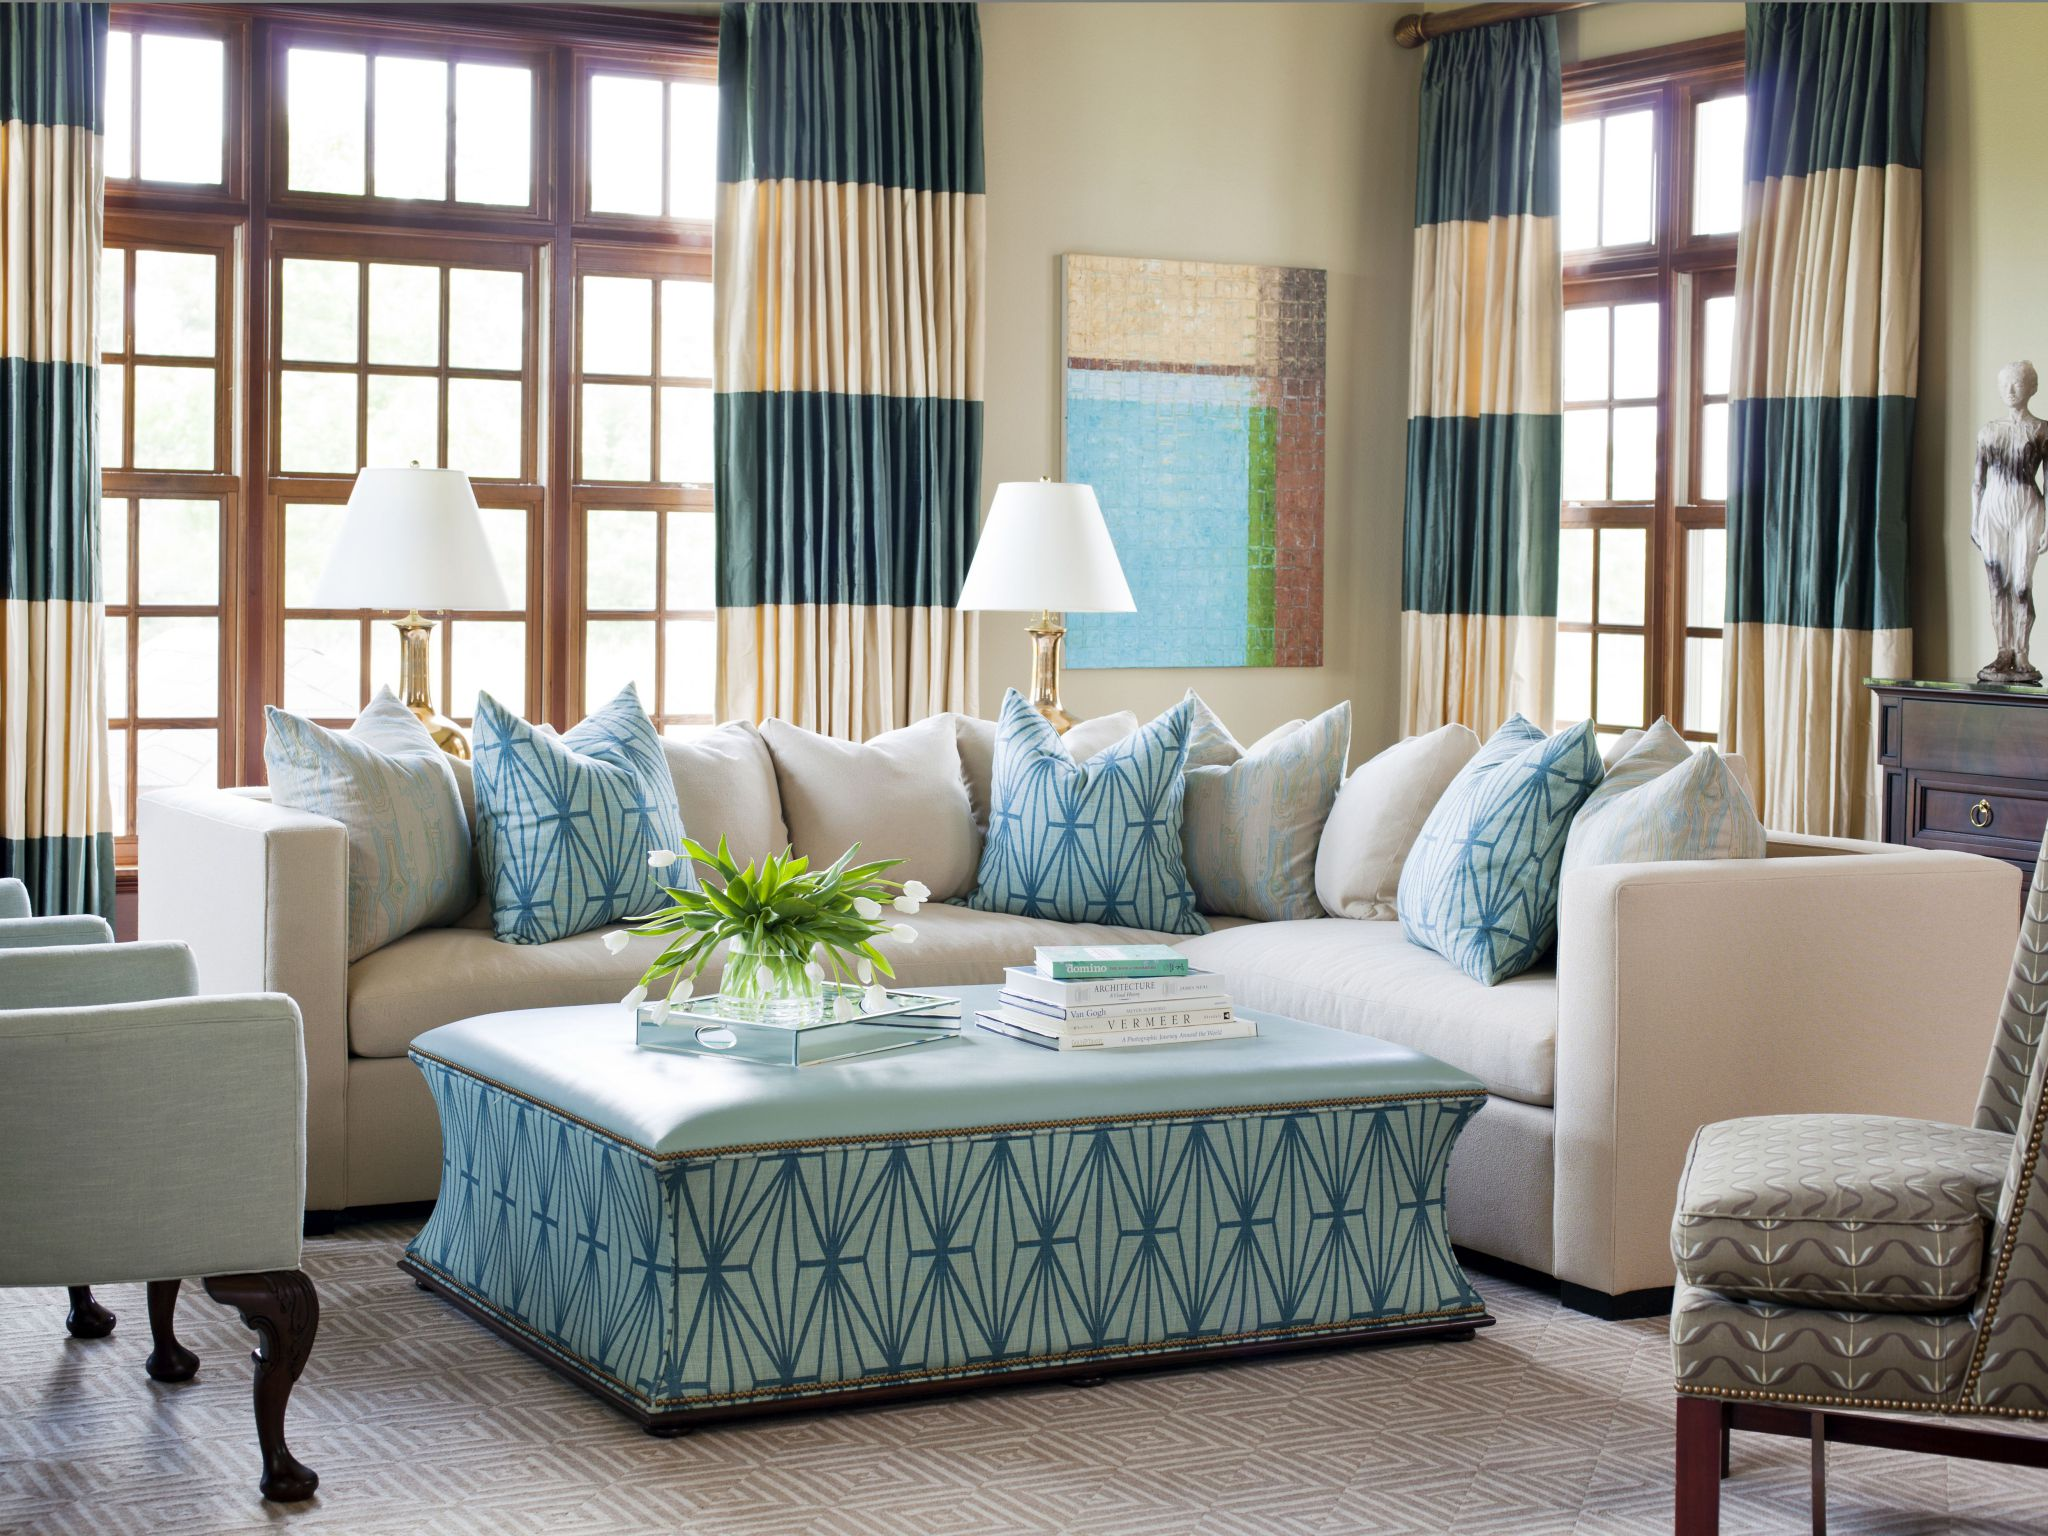 Awesome White Living Room Furniture with Blue Color Accent and Cozy Sofa plus Big Curtain